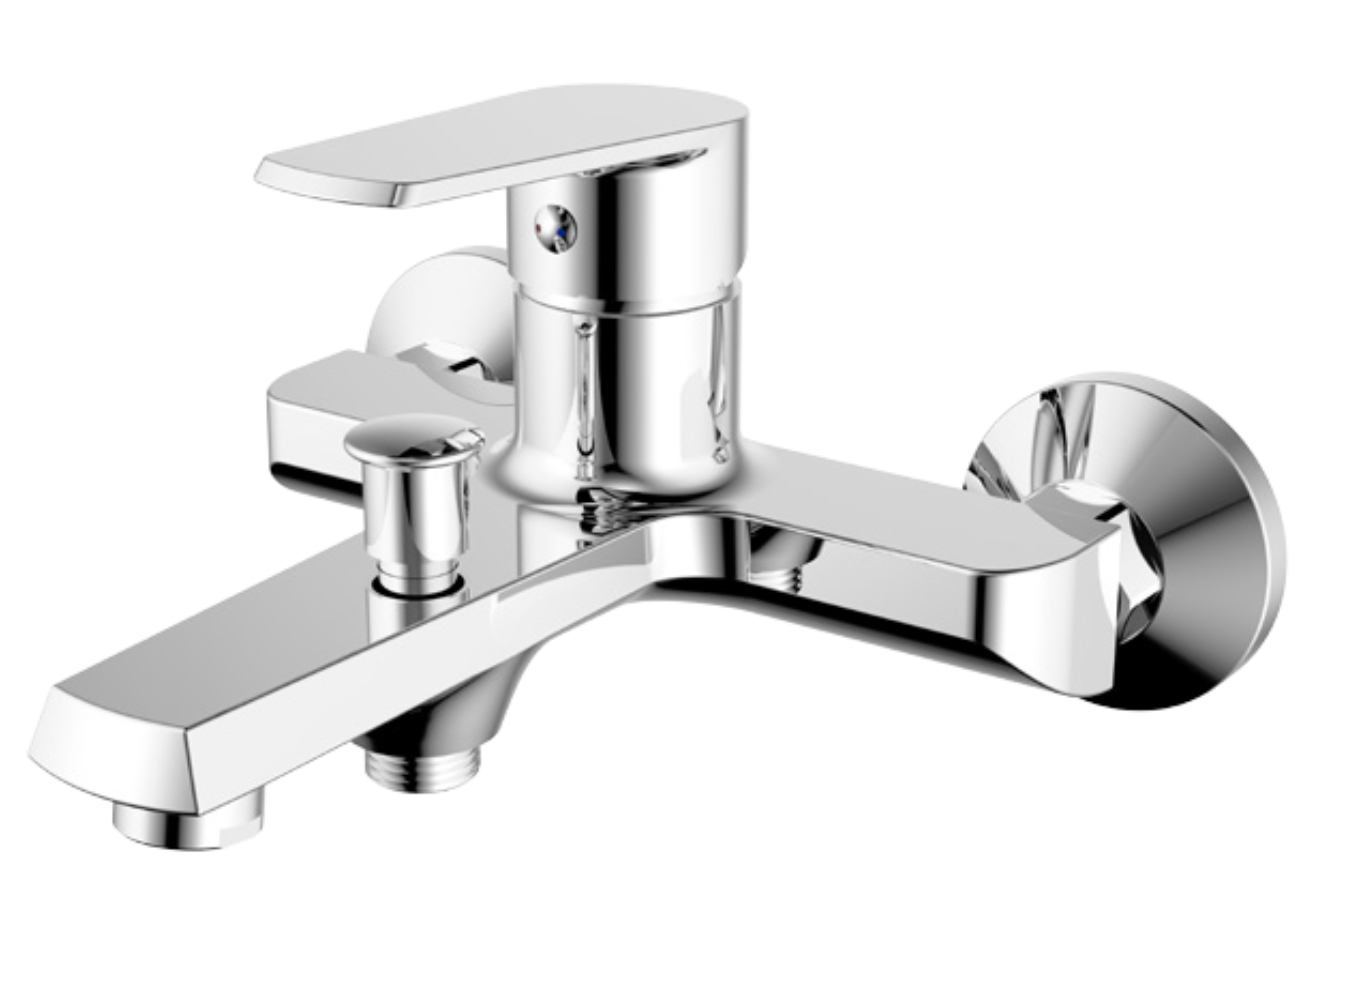 Gladys Bath Shower Mixer with Legs for Deck Mounting